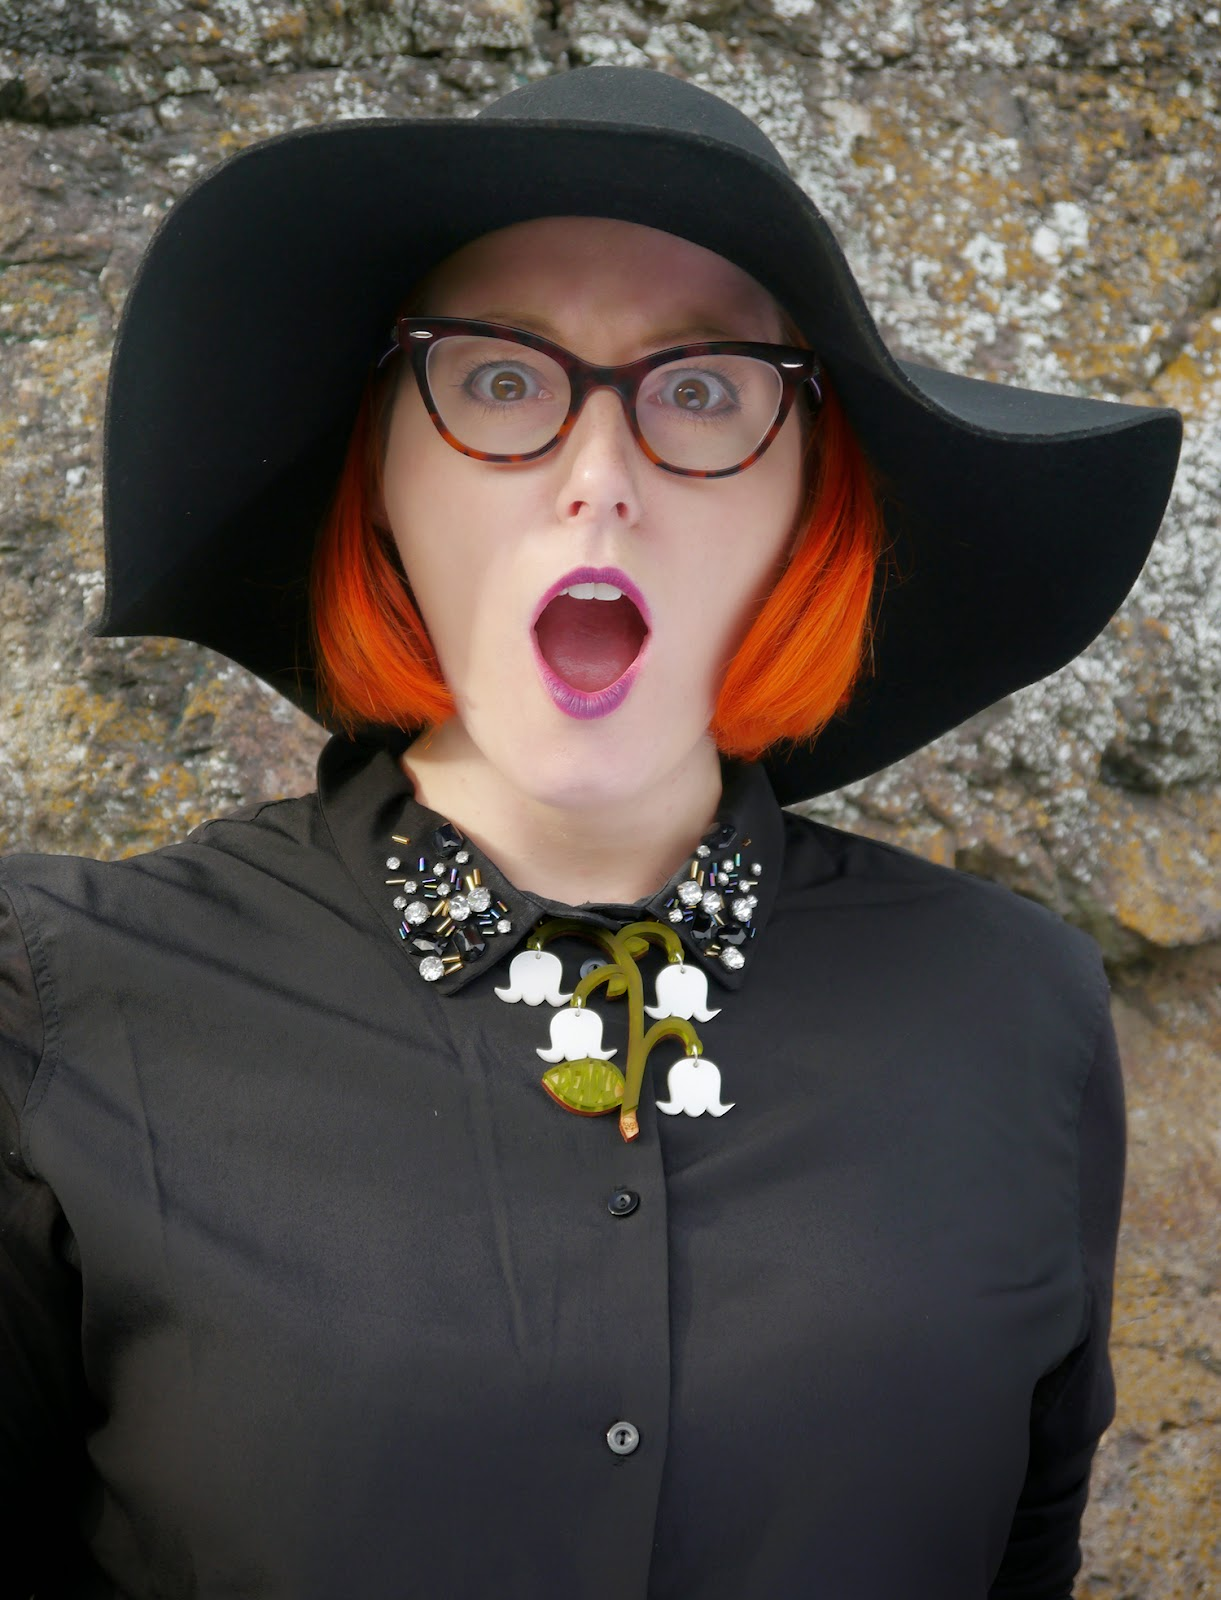 witch outfit, Halloween inspiration, Coven style, American Horror Story style, Halloween Outfit, red head, ginger hair, H&M wide brimmed hat, runaway fox flower necklace, black outfit, bejewelled collar, scottish blogger, scot street style